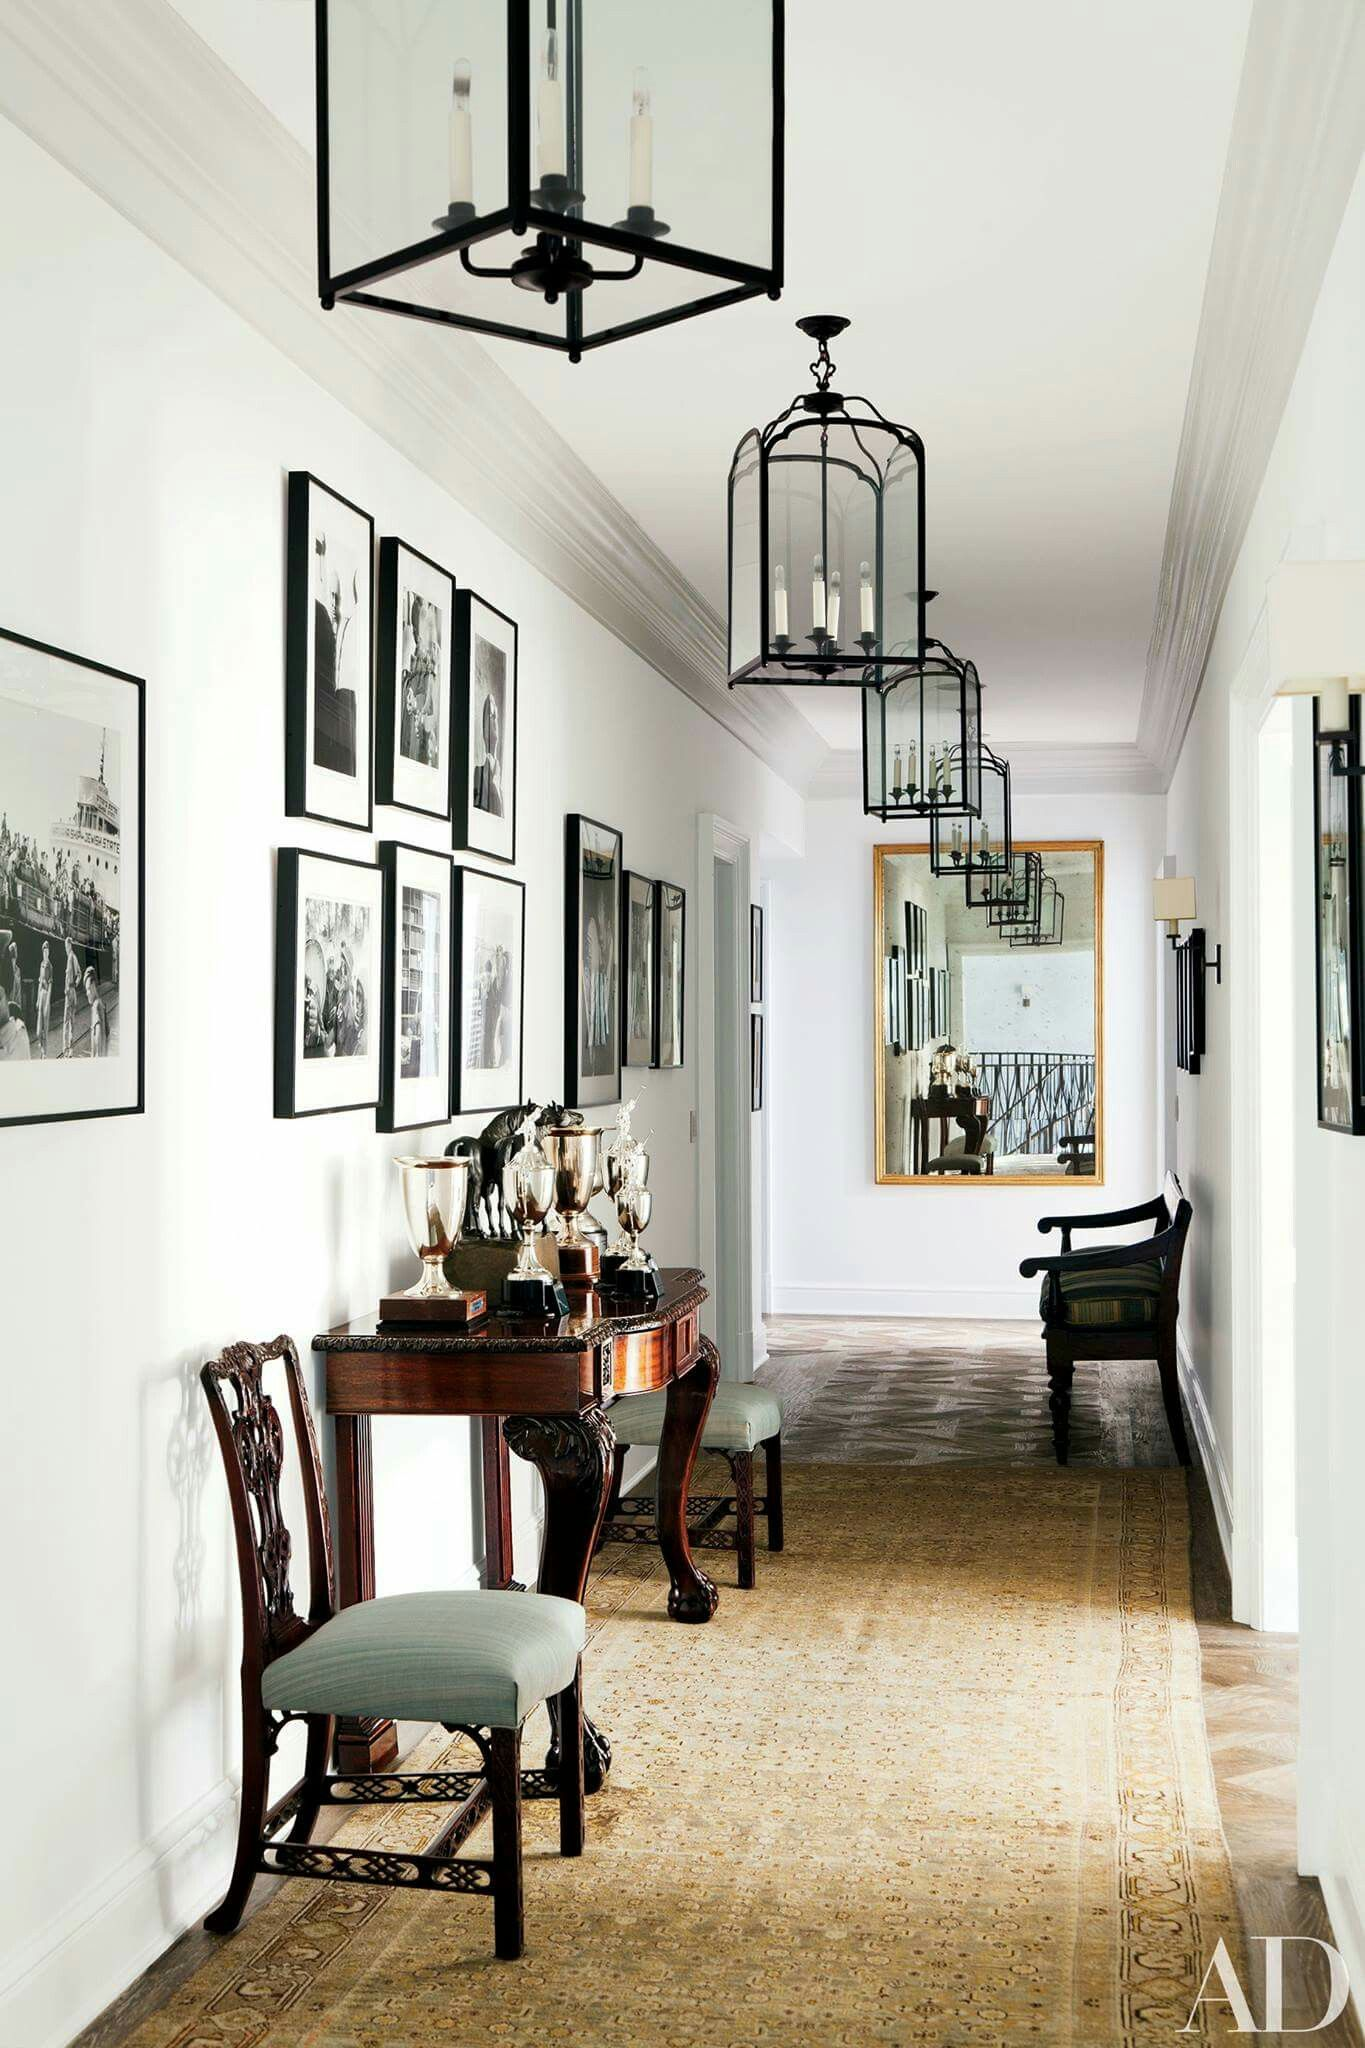 Browse Beautiful Interiors On Architectural Digest For The Perfect Inspiration